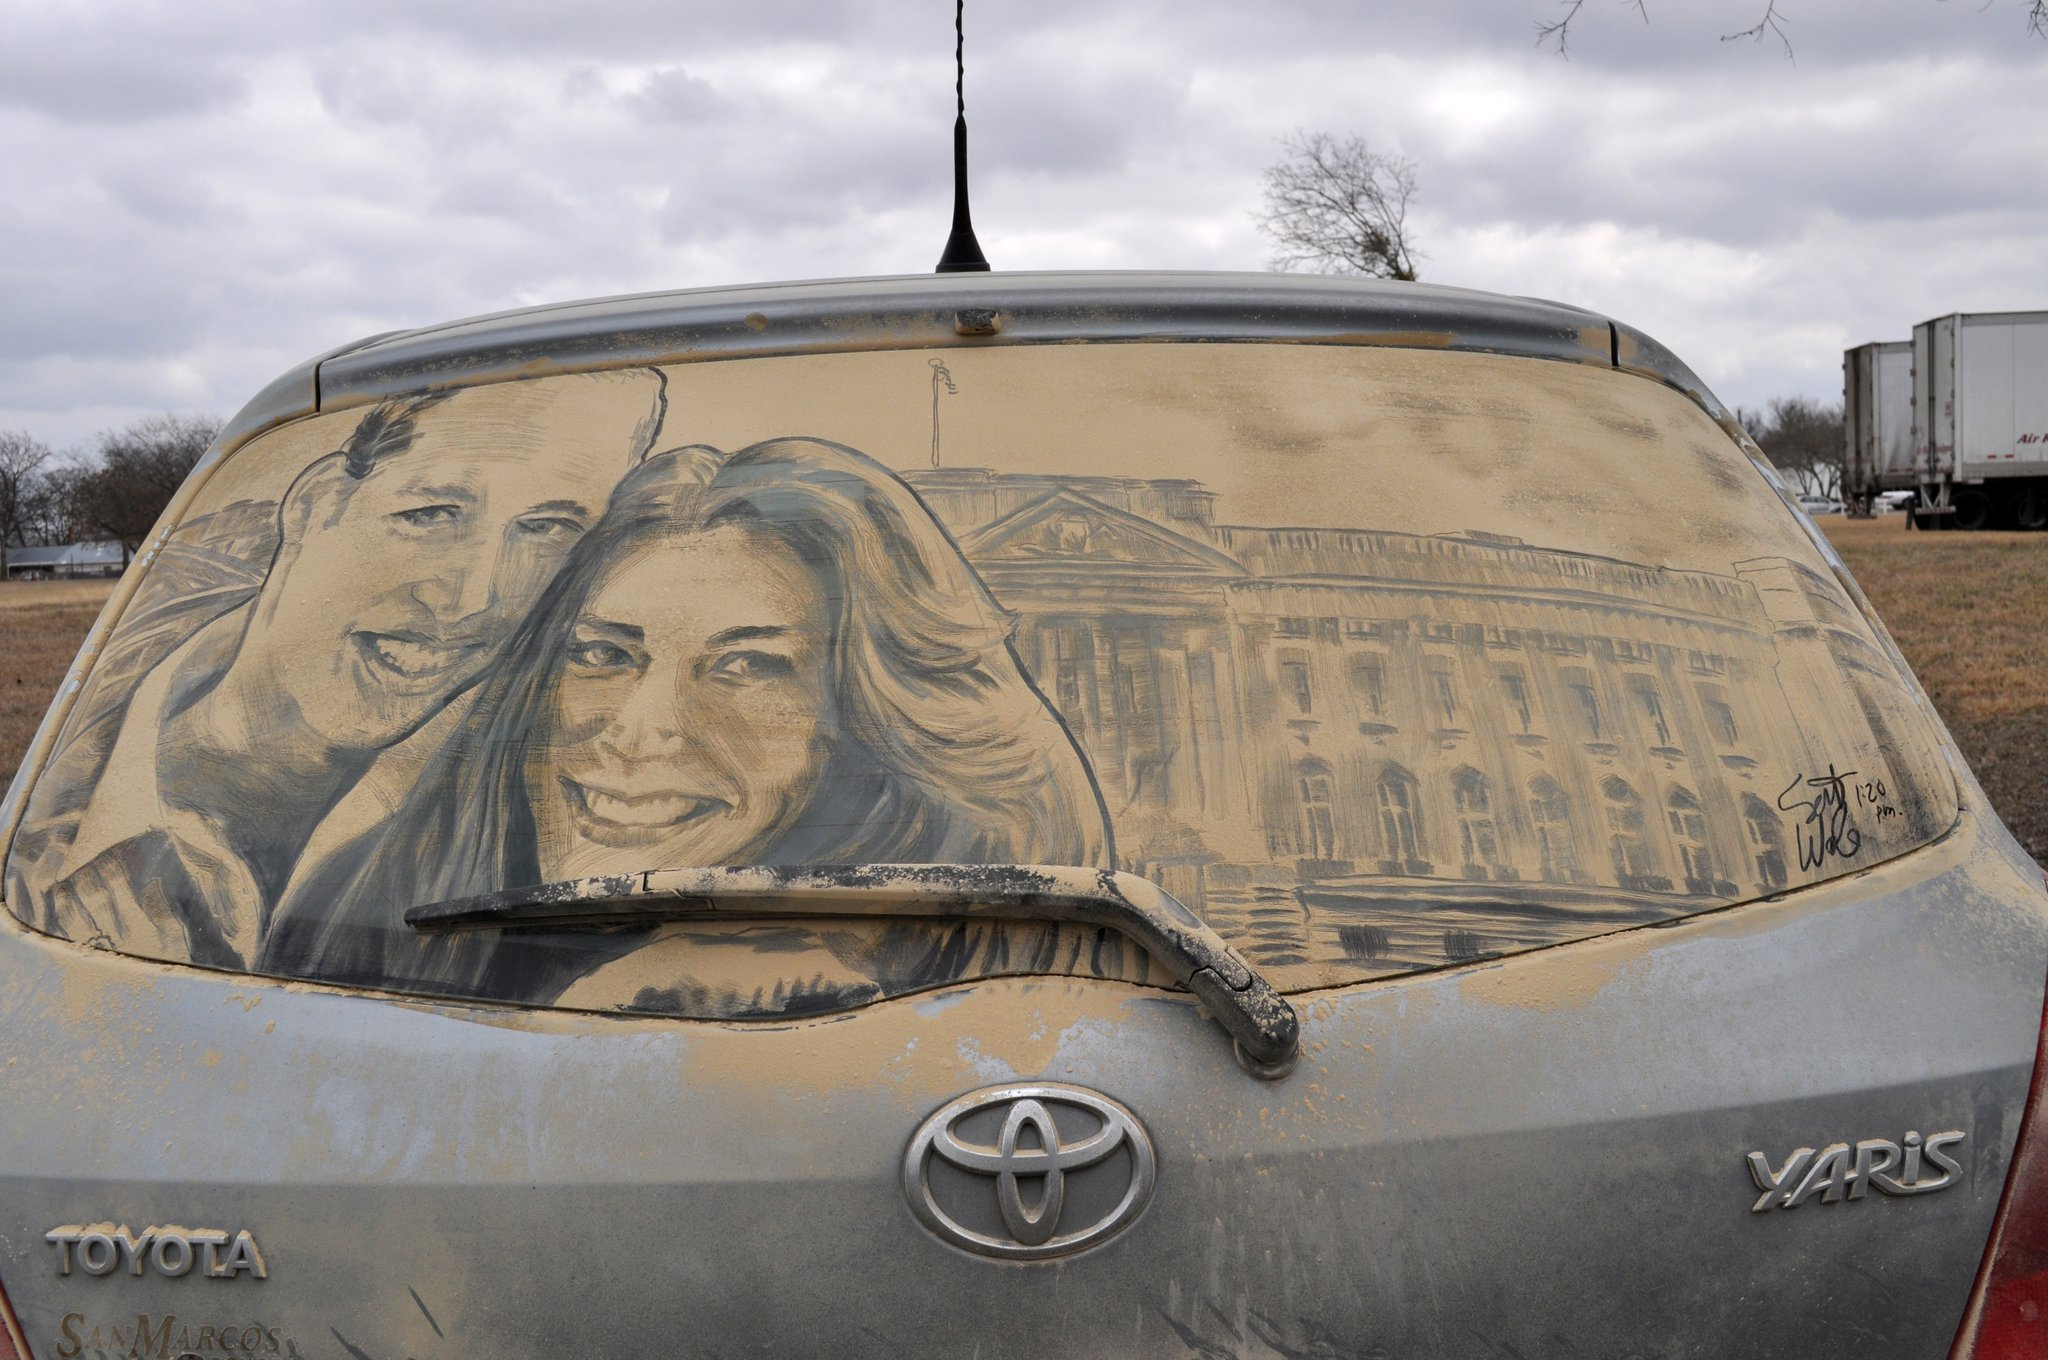 kate william 20 Dirty Car Artworks by Scott Wade